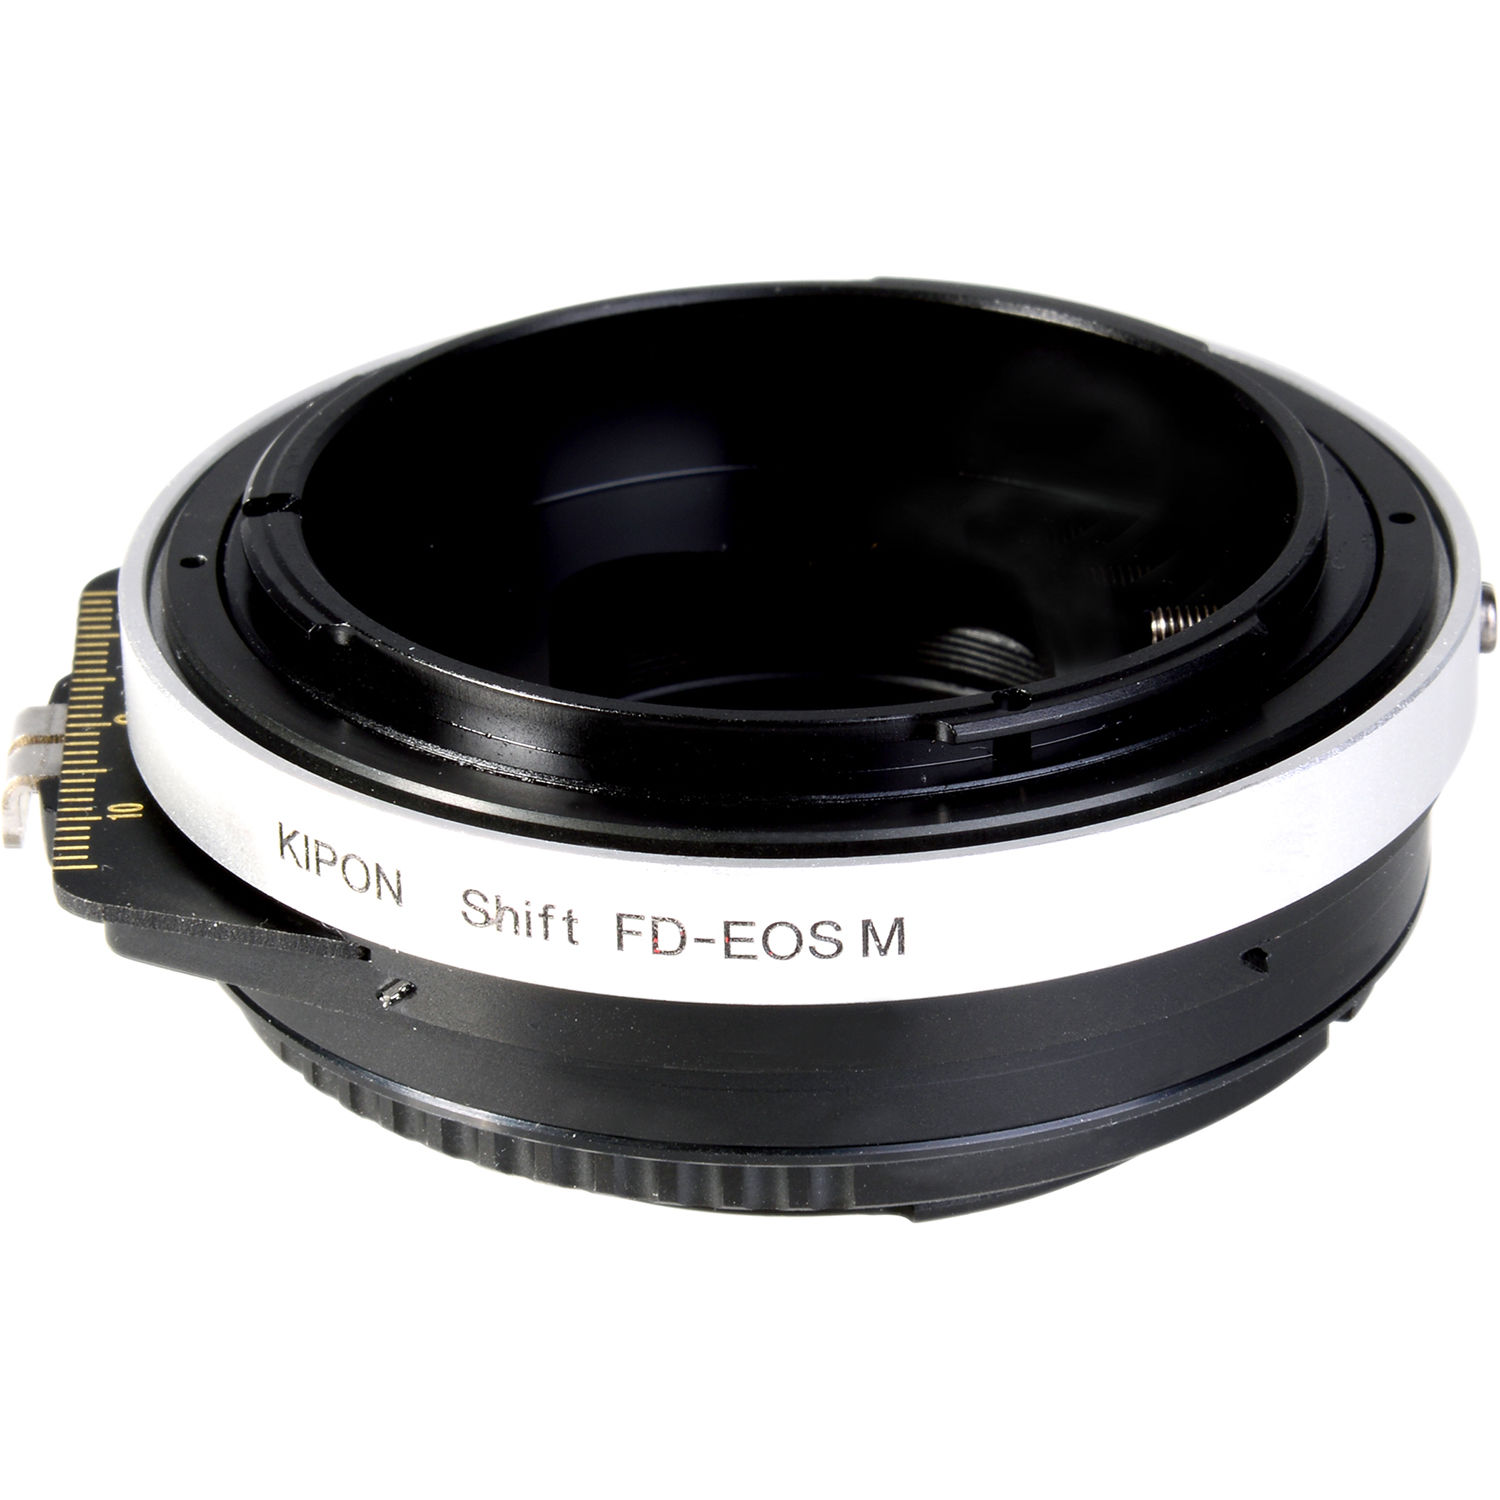 KIPON Lens Mount Adapter for Canon FD Lens to FD-EOS M SHIFT B&H